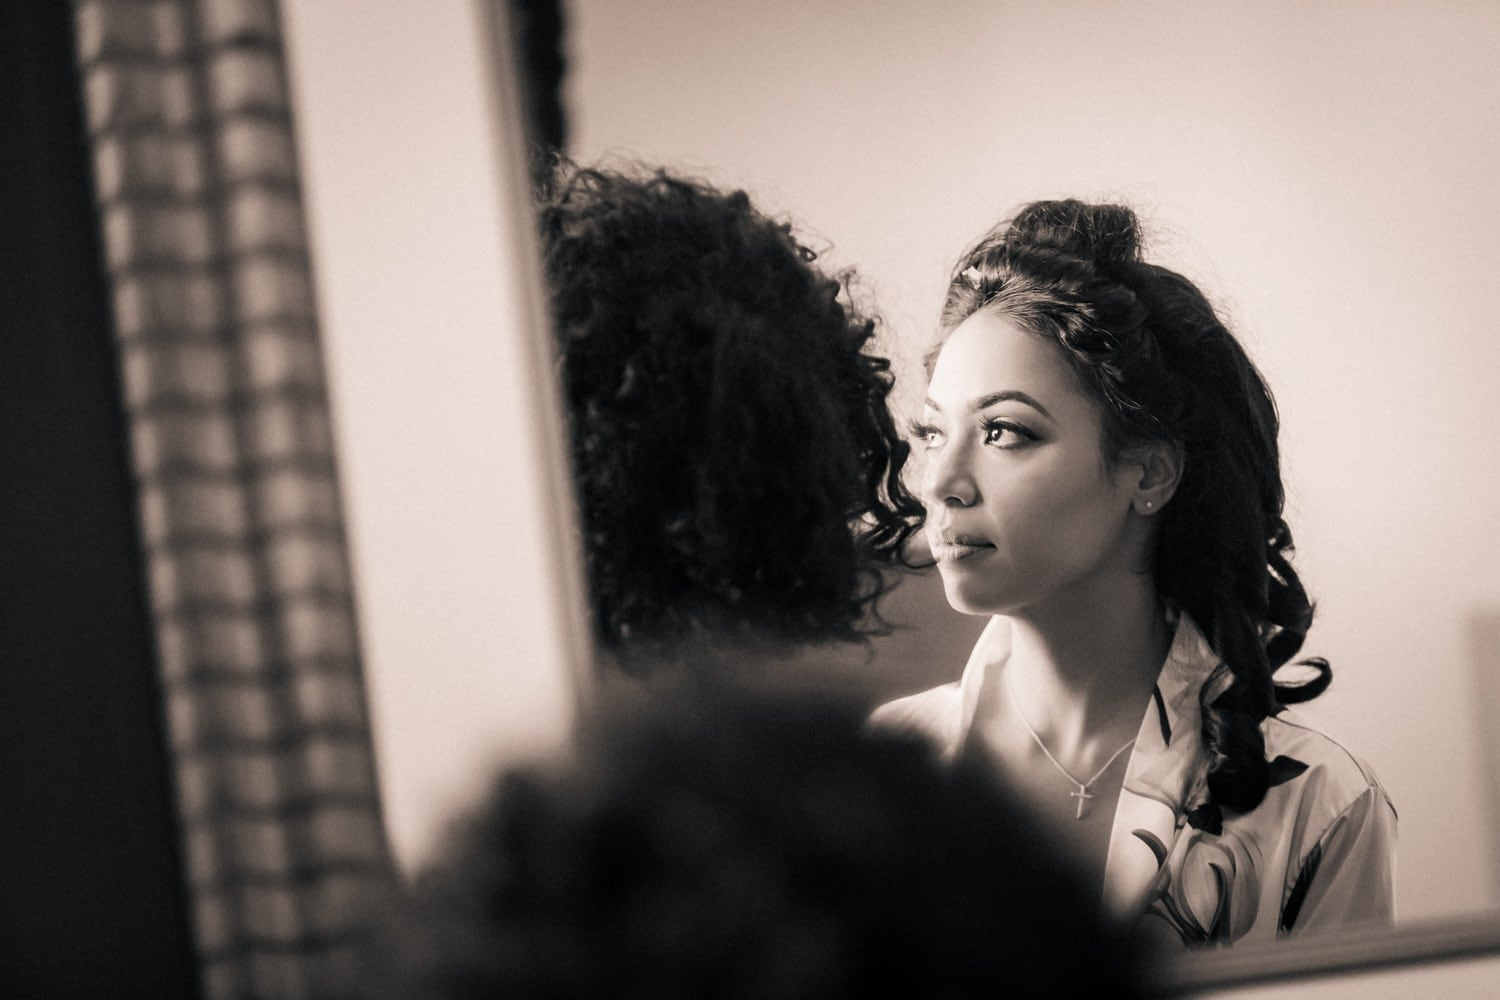 Photo of reflection of bride preparing for wedding in Punta Cana, Dominican Republic.